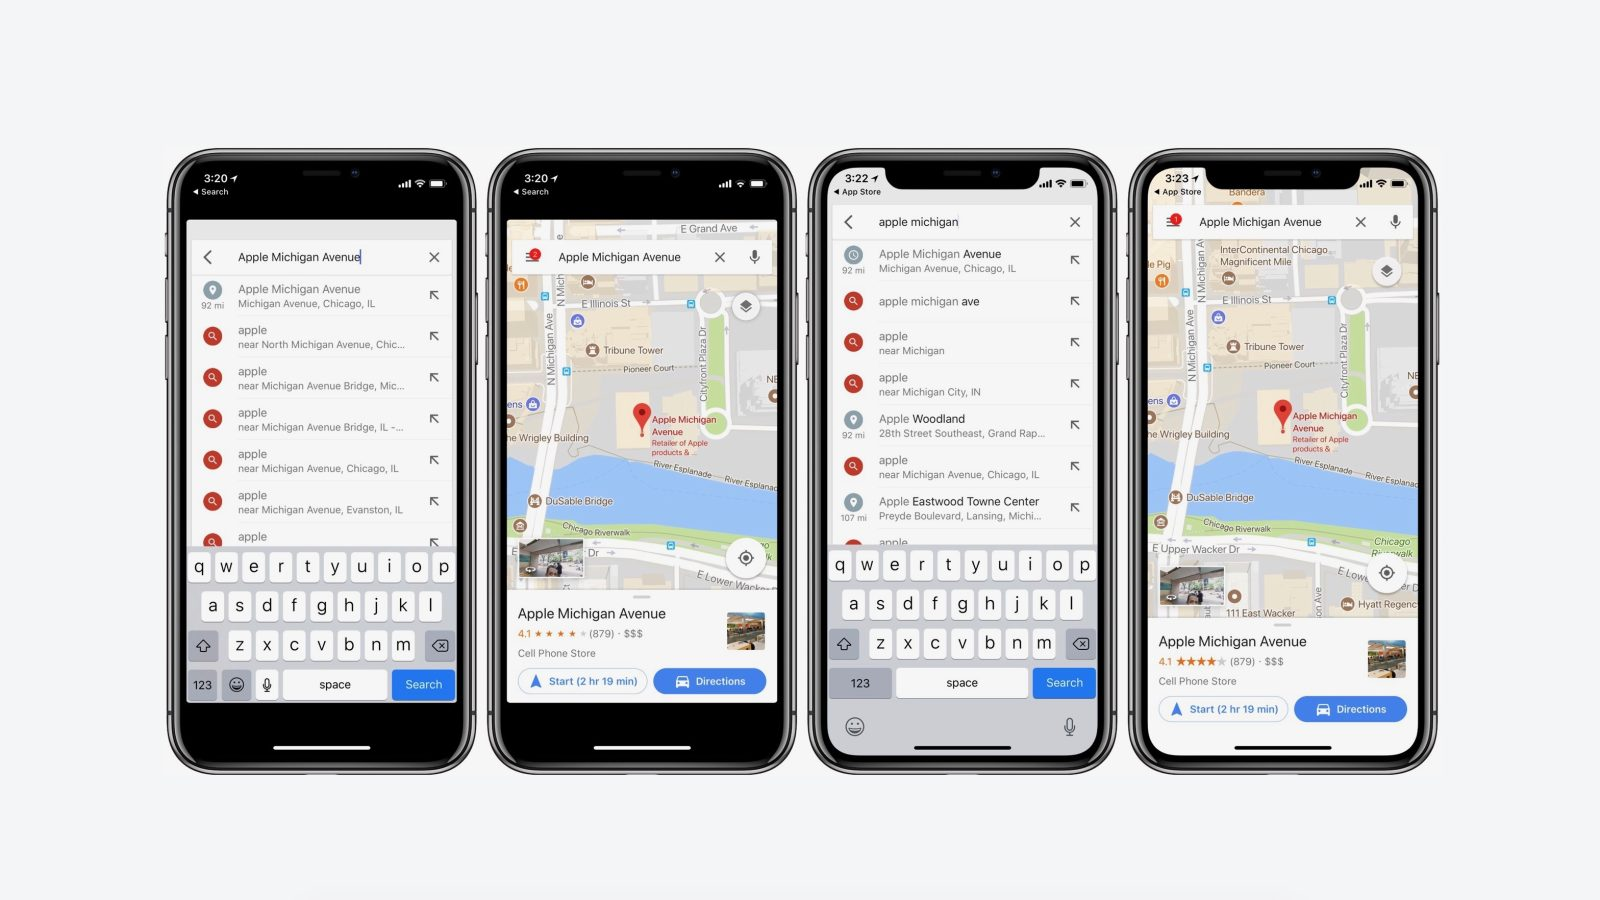 Google Maps for iOS gets update with iPhone X support - 9to5Mac on google maps error, google maps ipad, google hangouts app iphone, google maps mobile street view, google maps dublin, apps on iphone, smartphone iphone, google maps sign, google maps icon, google maps theme, google maps on phone, google docs app iphone, google g logo red, google earth swastika building, android iphone, google maps street view bloopers, bluetooth iphone, google maps asia countries, google chrome app iphone, travel map apps for iphone,